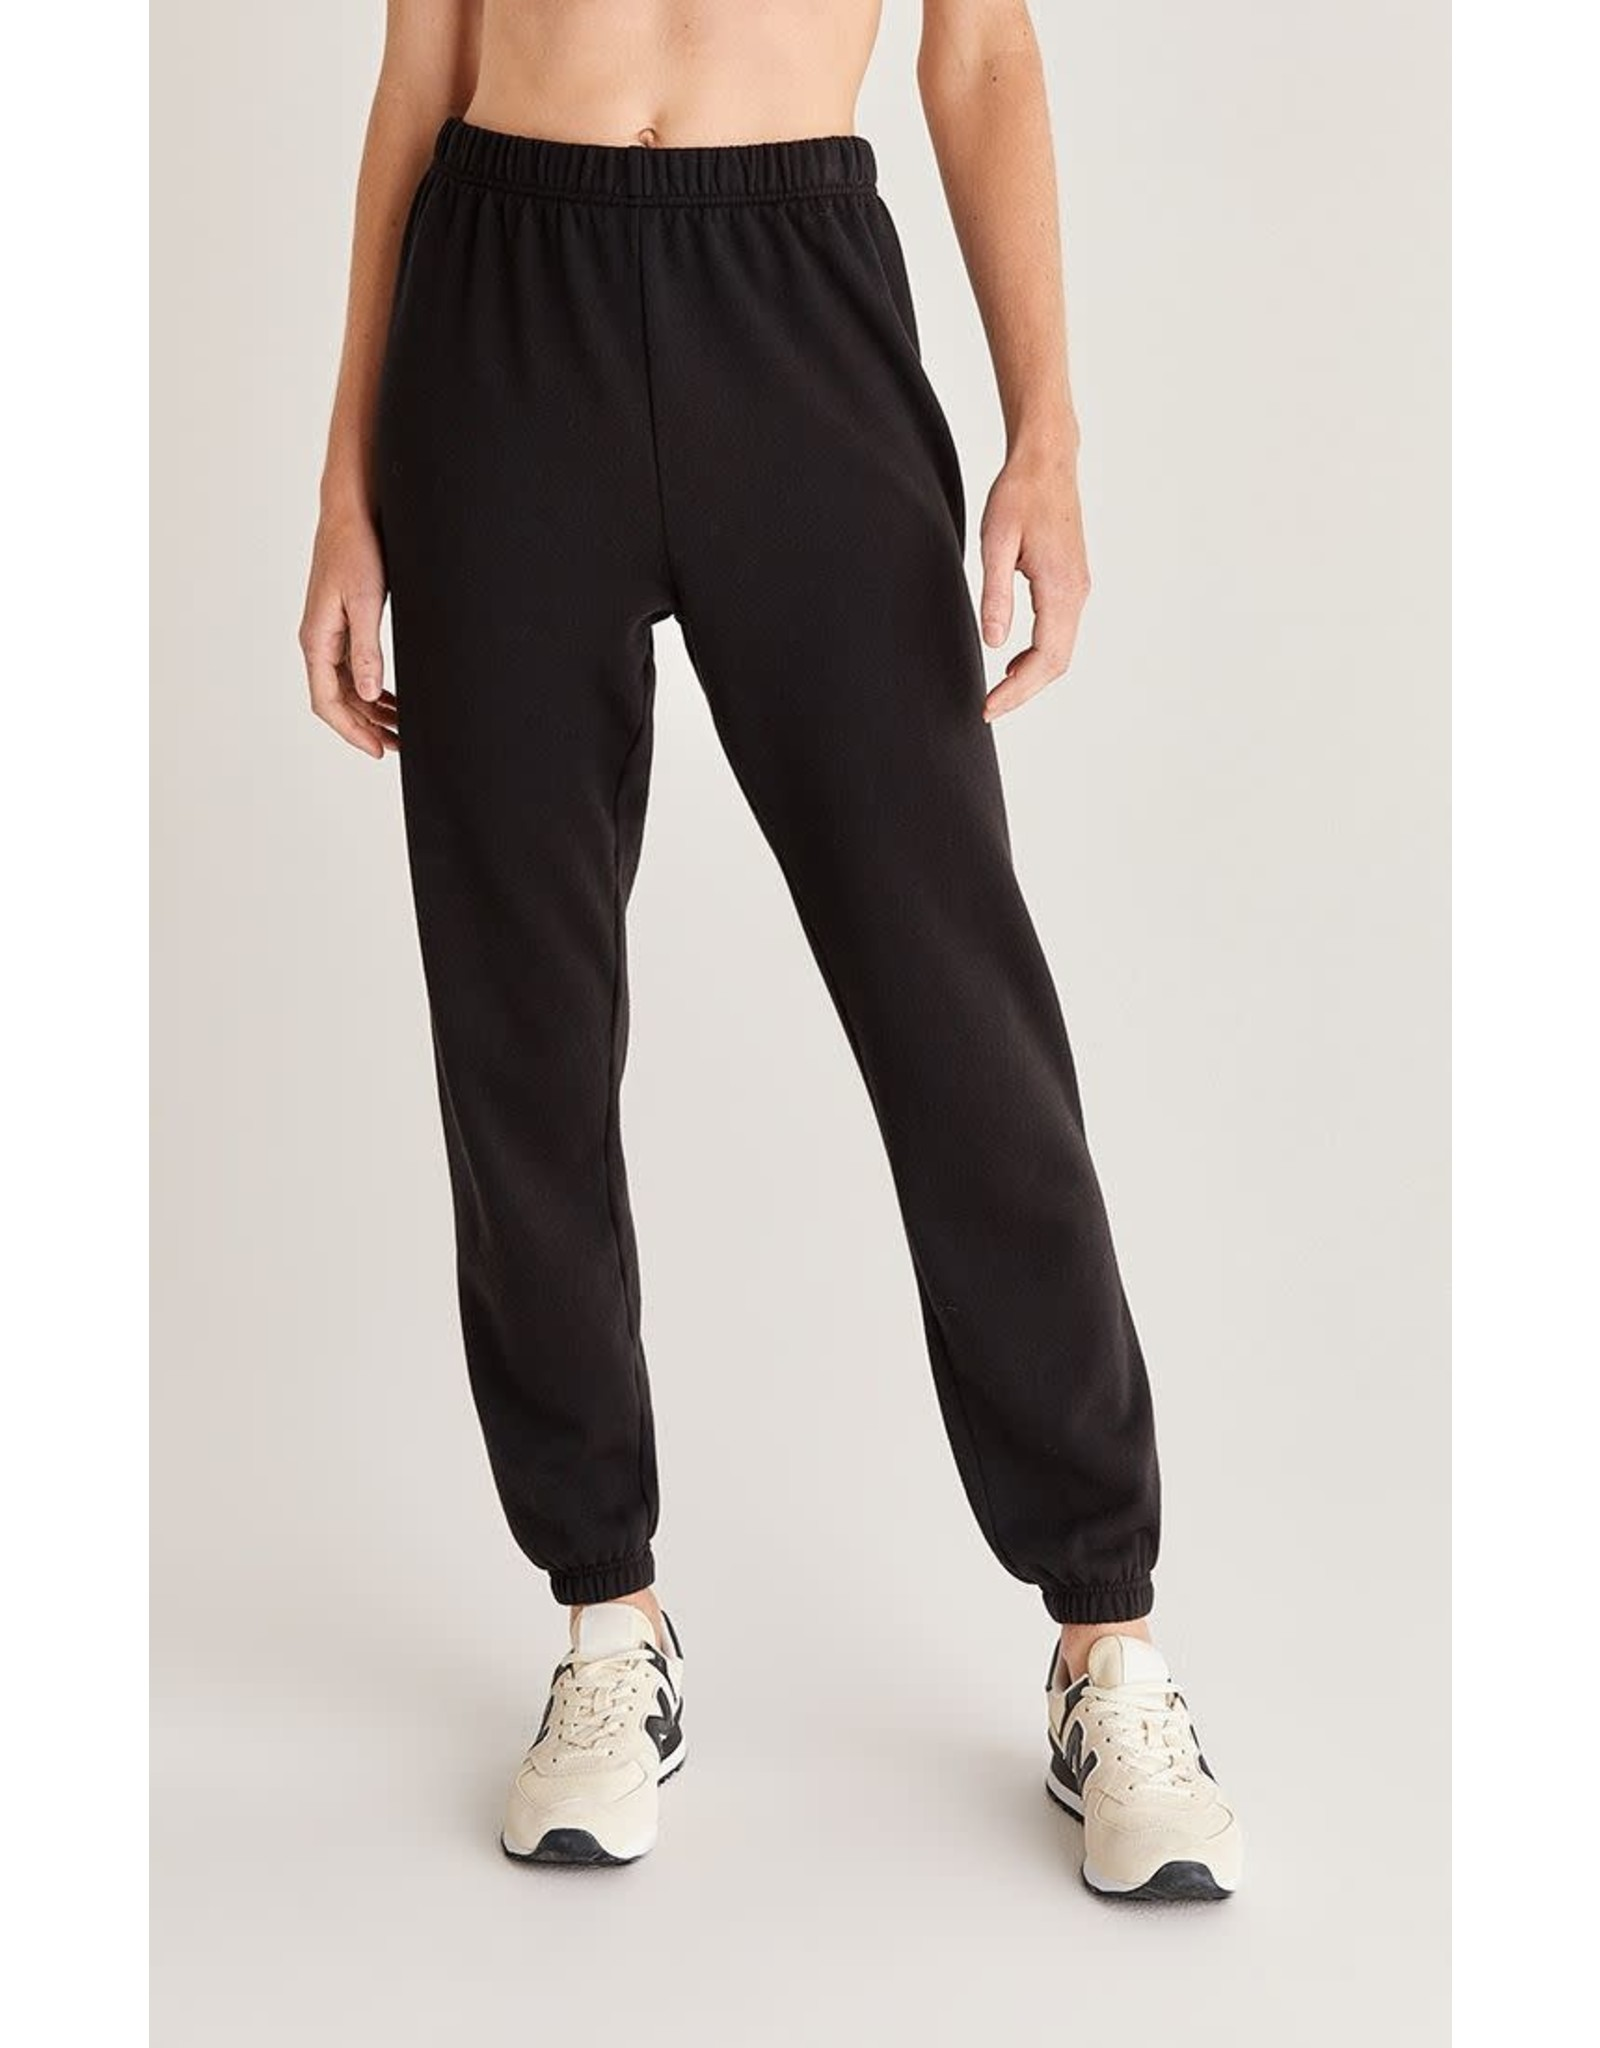 Z supply ZS Classic Gym Jogger